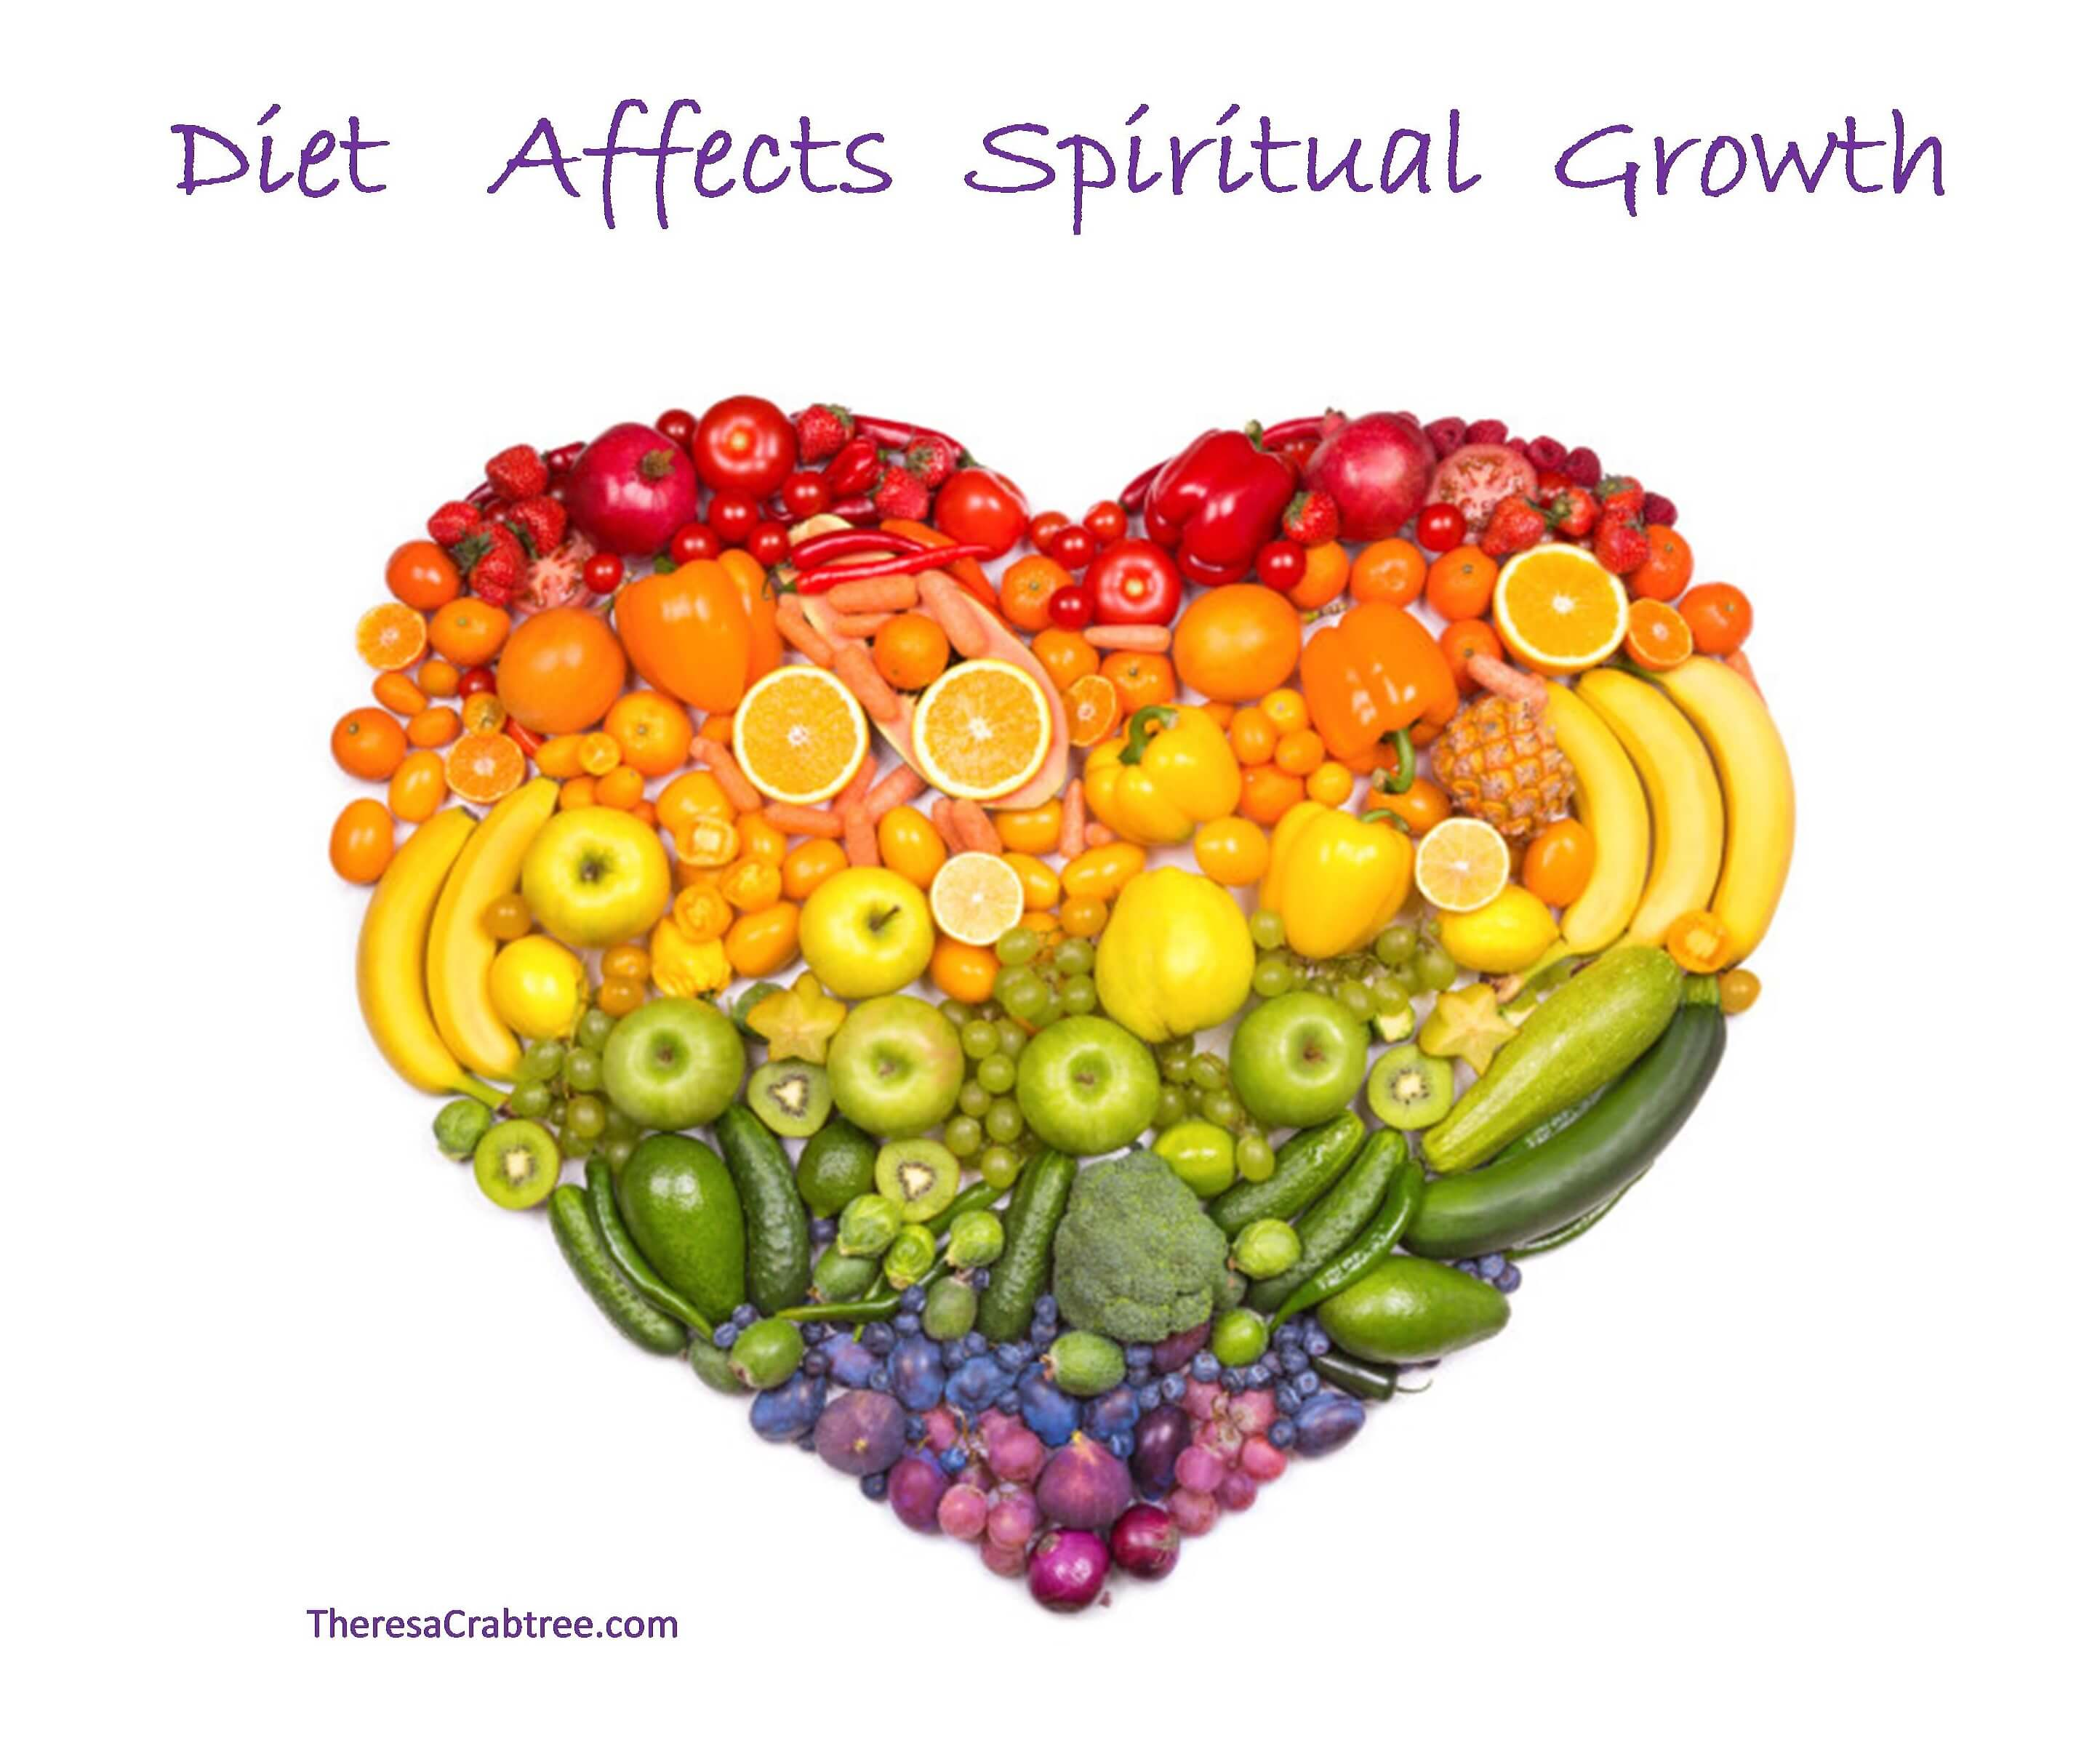 Soul Connection 18 ~ Diet Affects Spiritual Growth